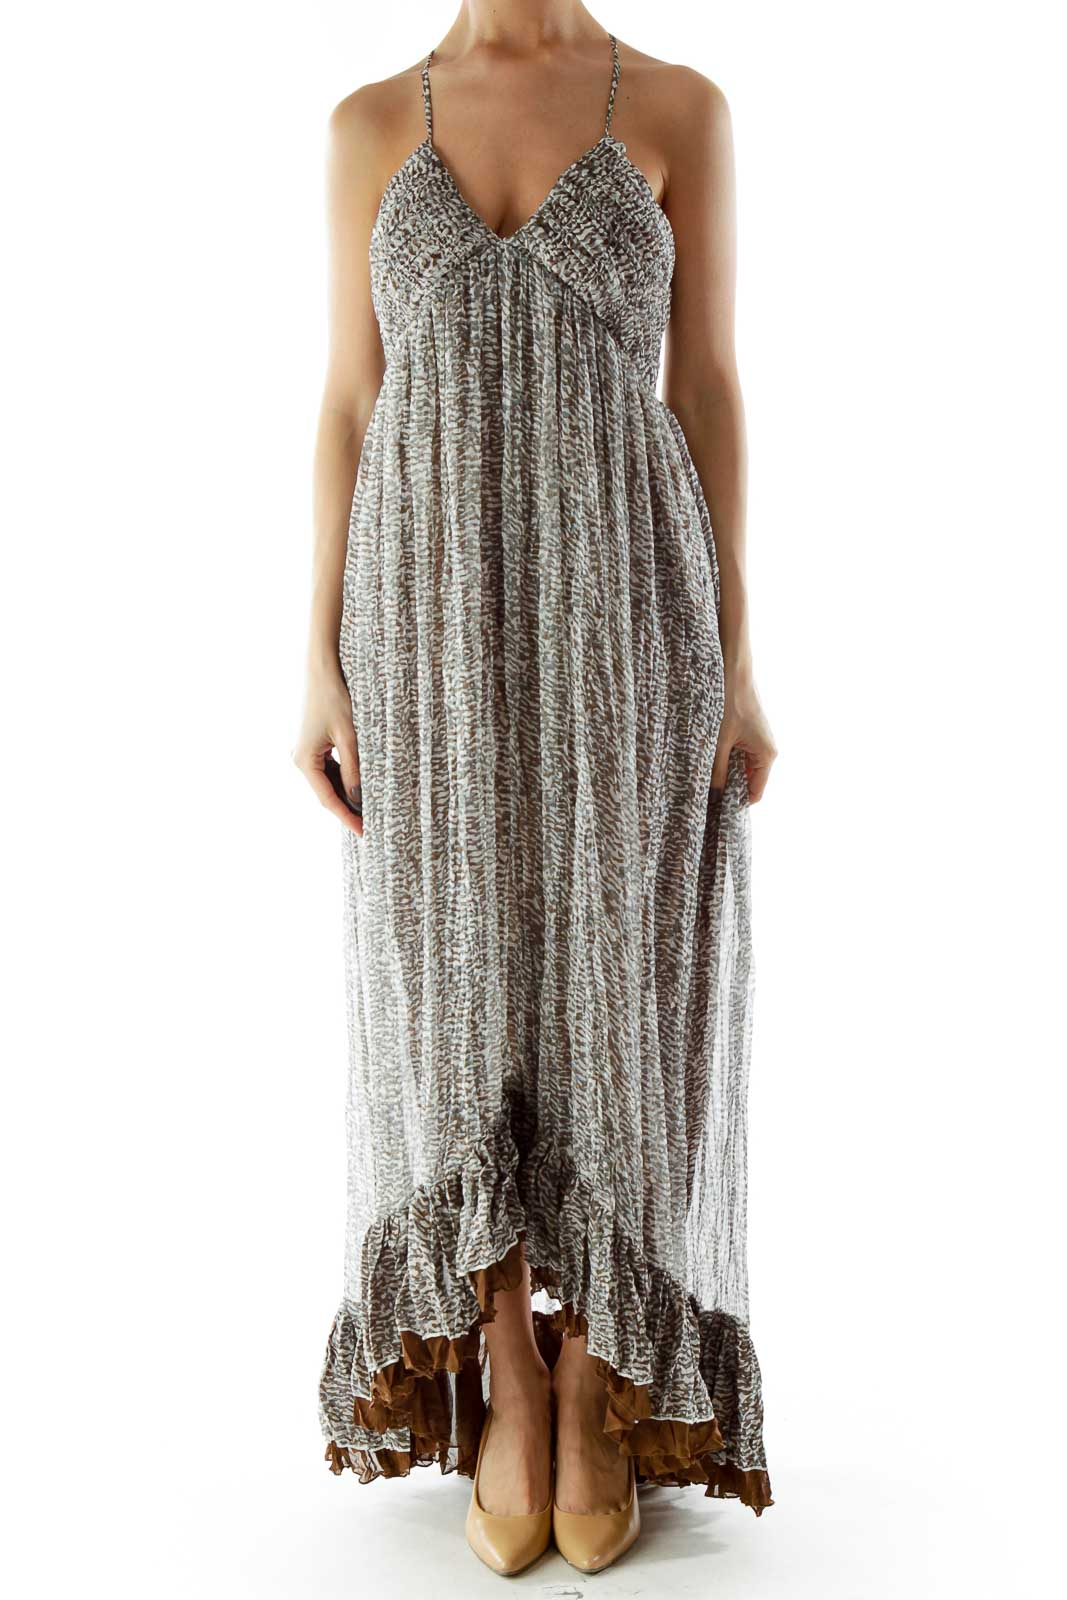 White Brown Green Ruffled Layered Maxi Dress with Adjustable Strap Front